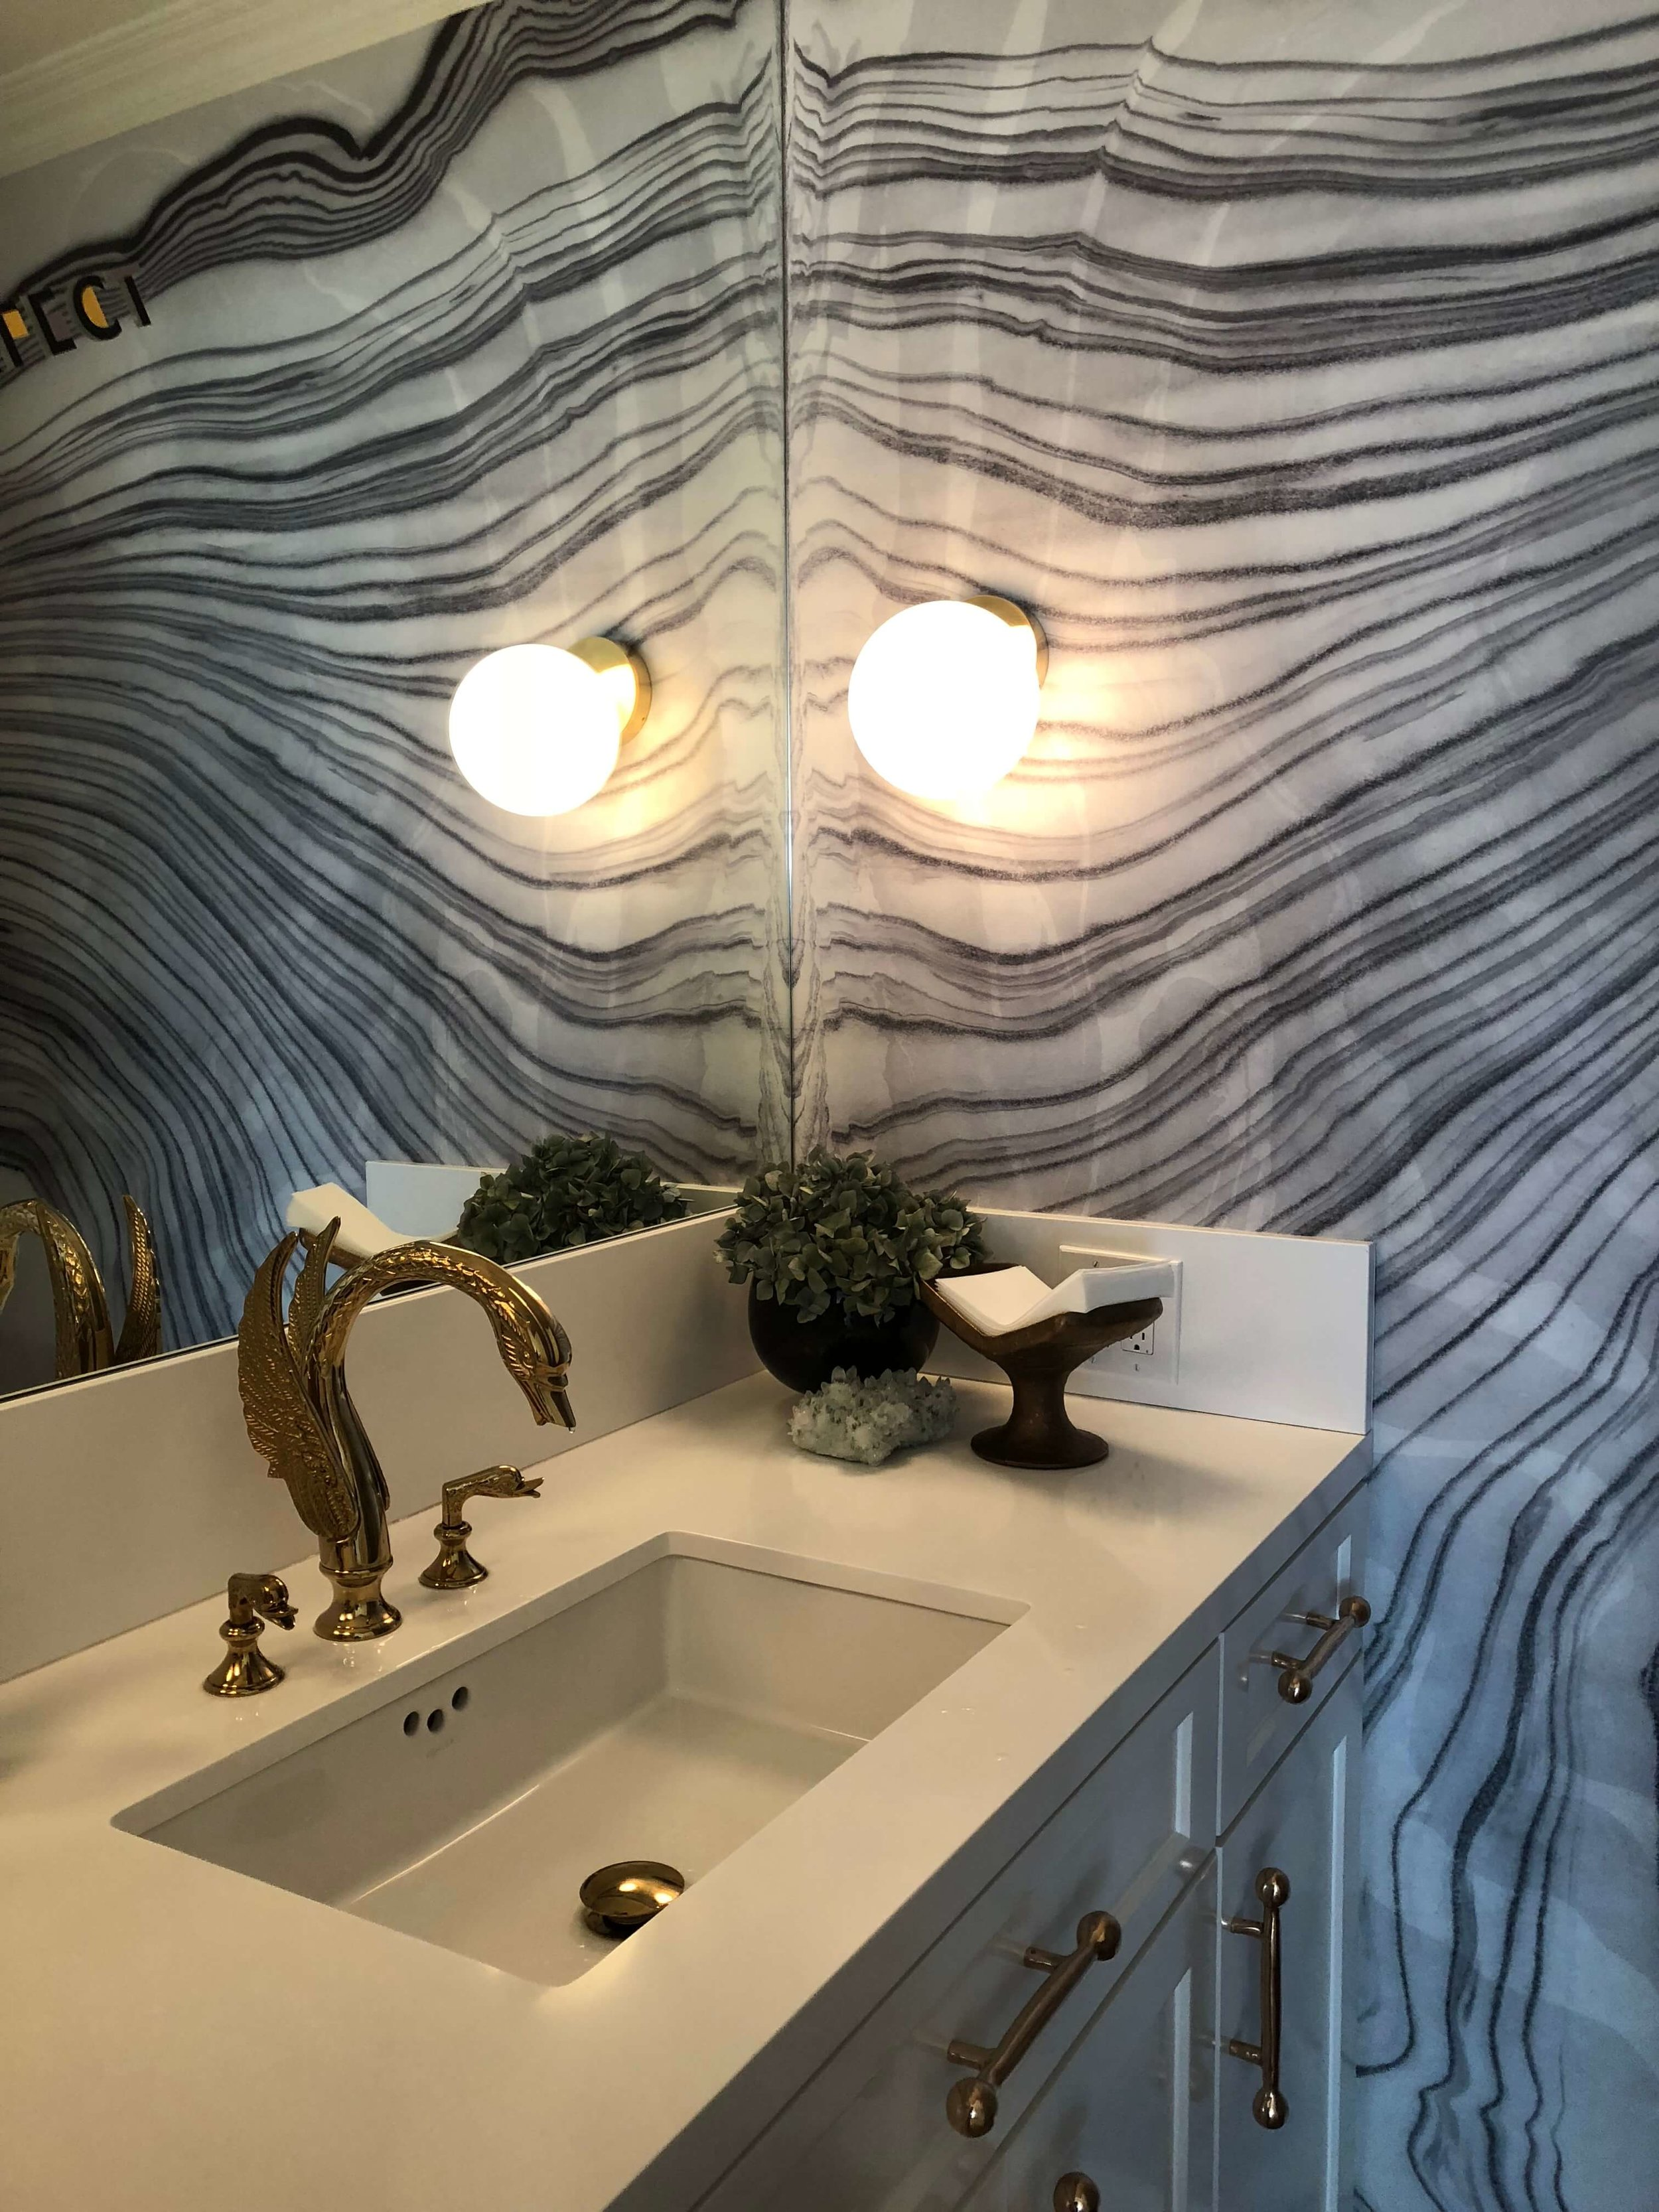 Powder bath with wallpaper by Calico Wallpaper at Casa Perfect, Beverly Hills #marblewallpaper #powderbath